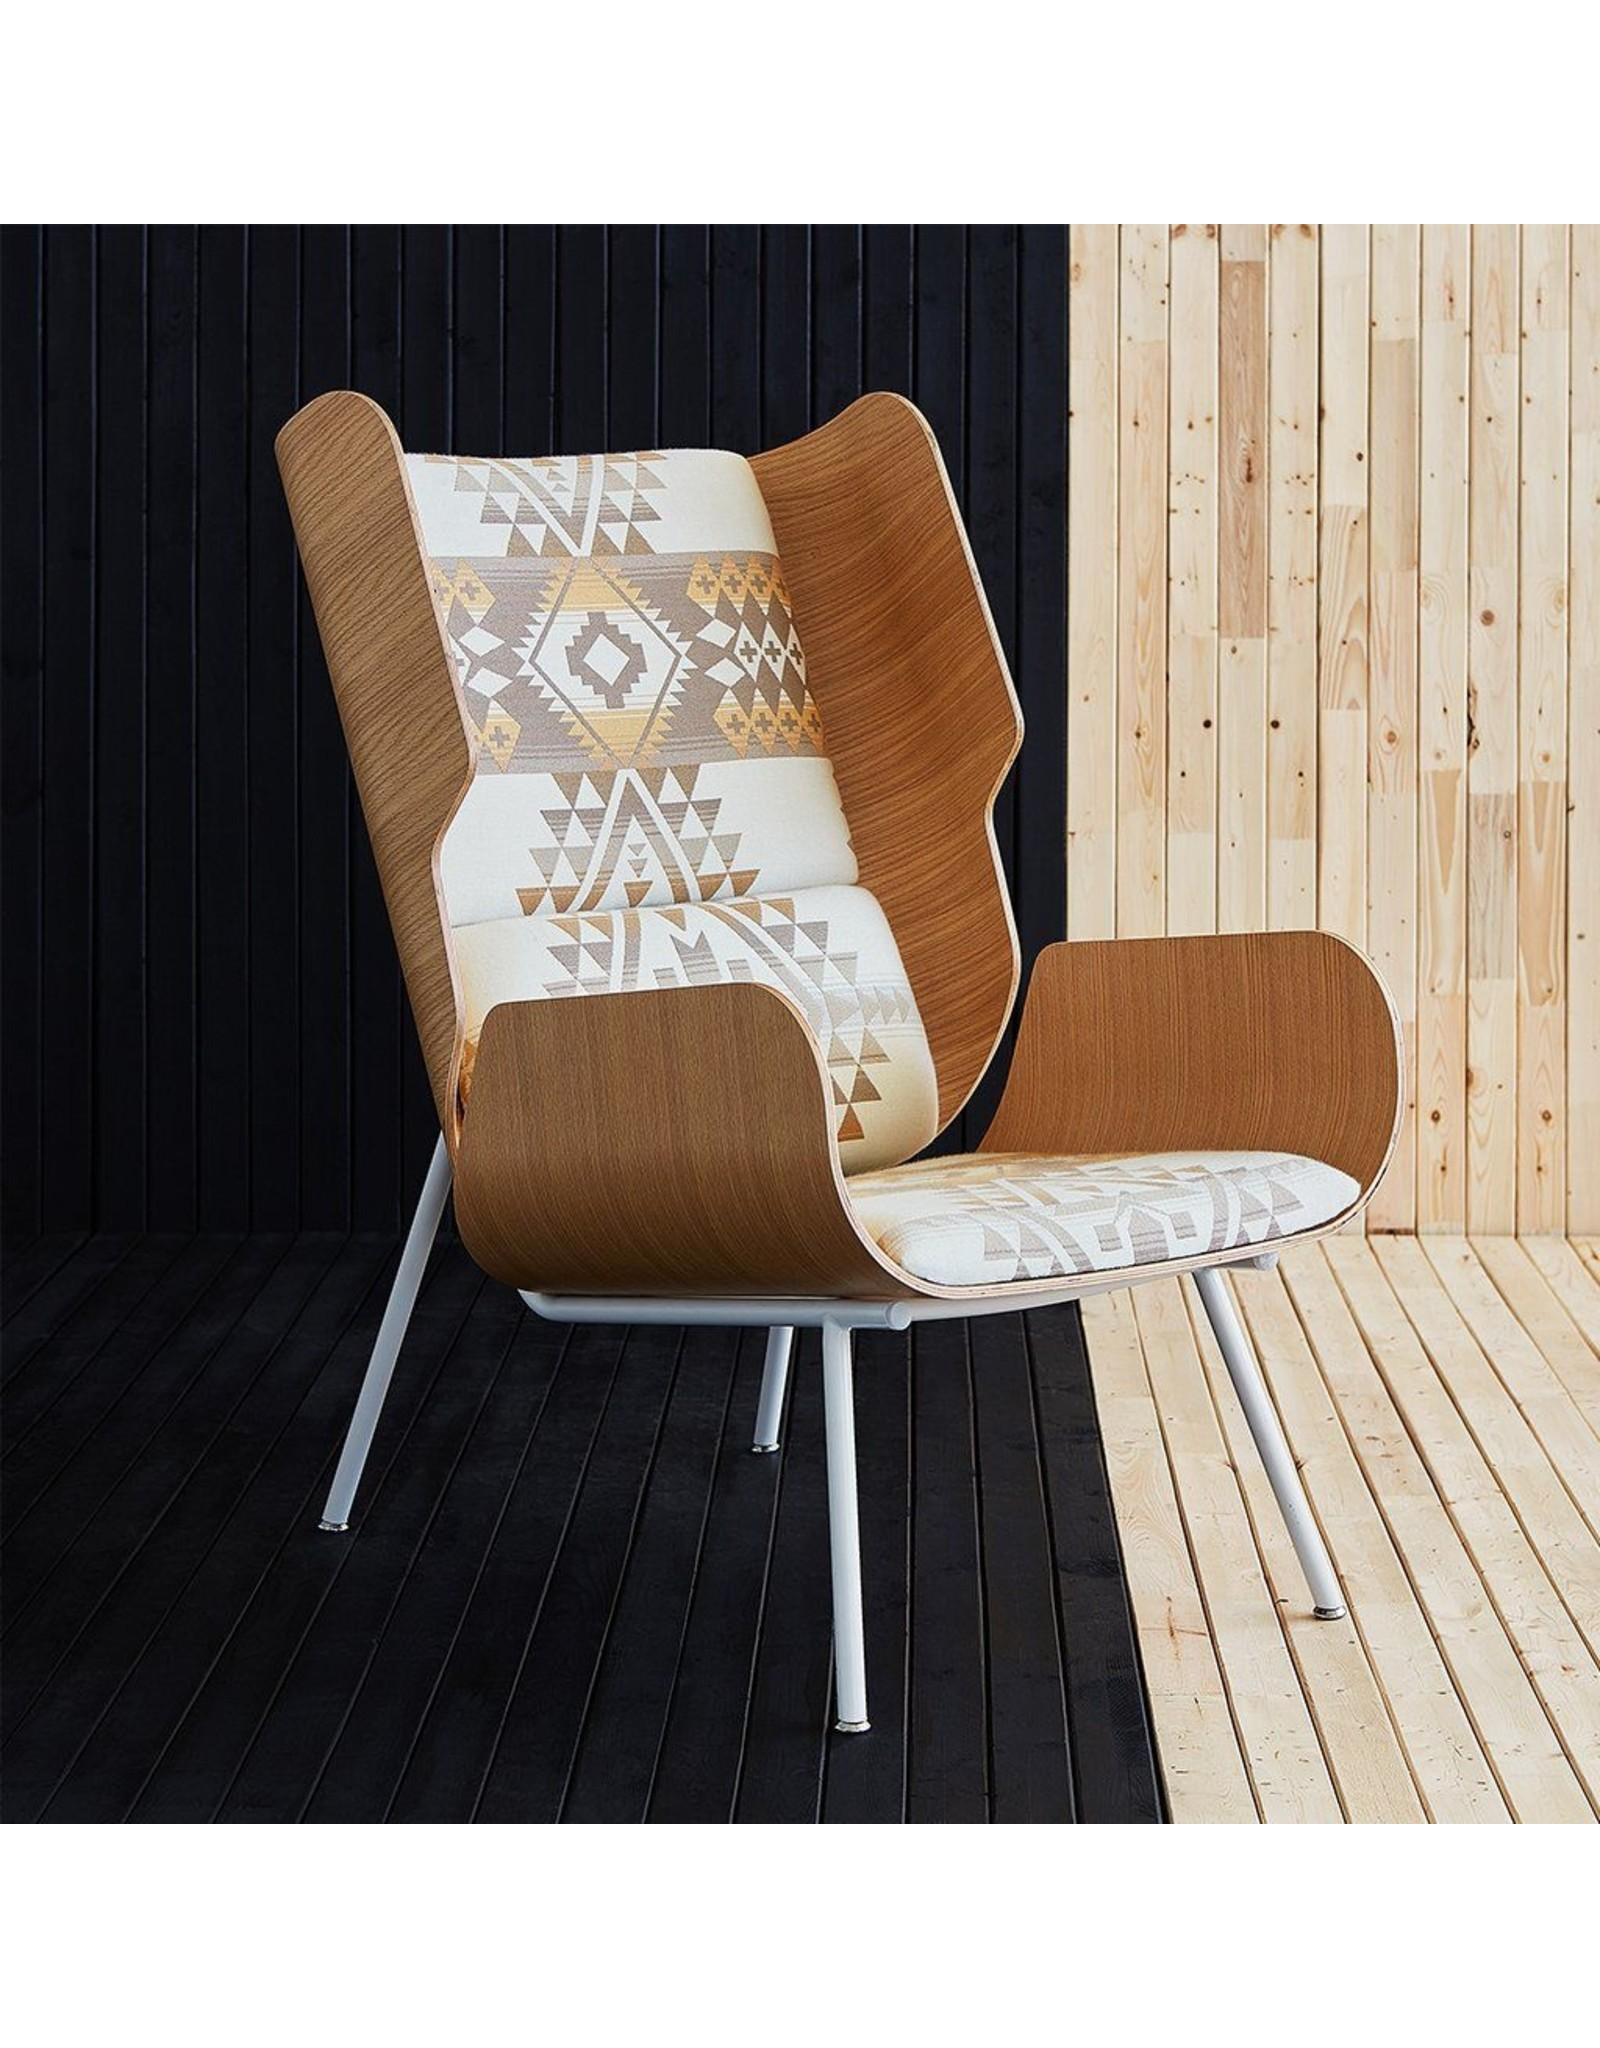 Gus* Modern Elk Chair, Pendleton Diamond Charcoal